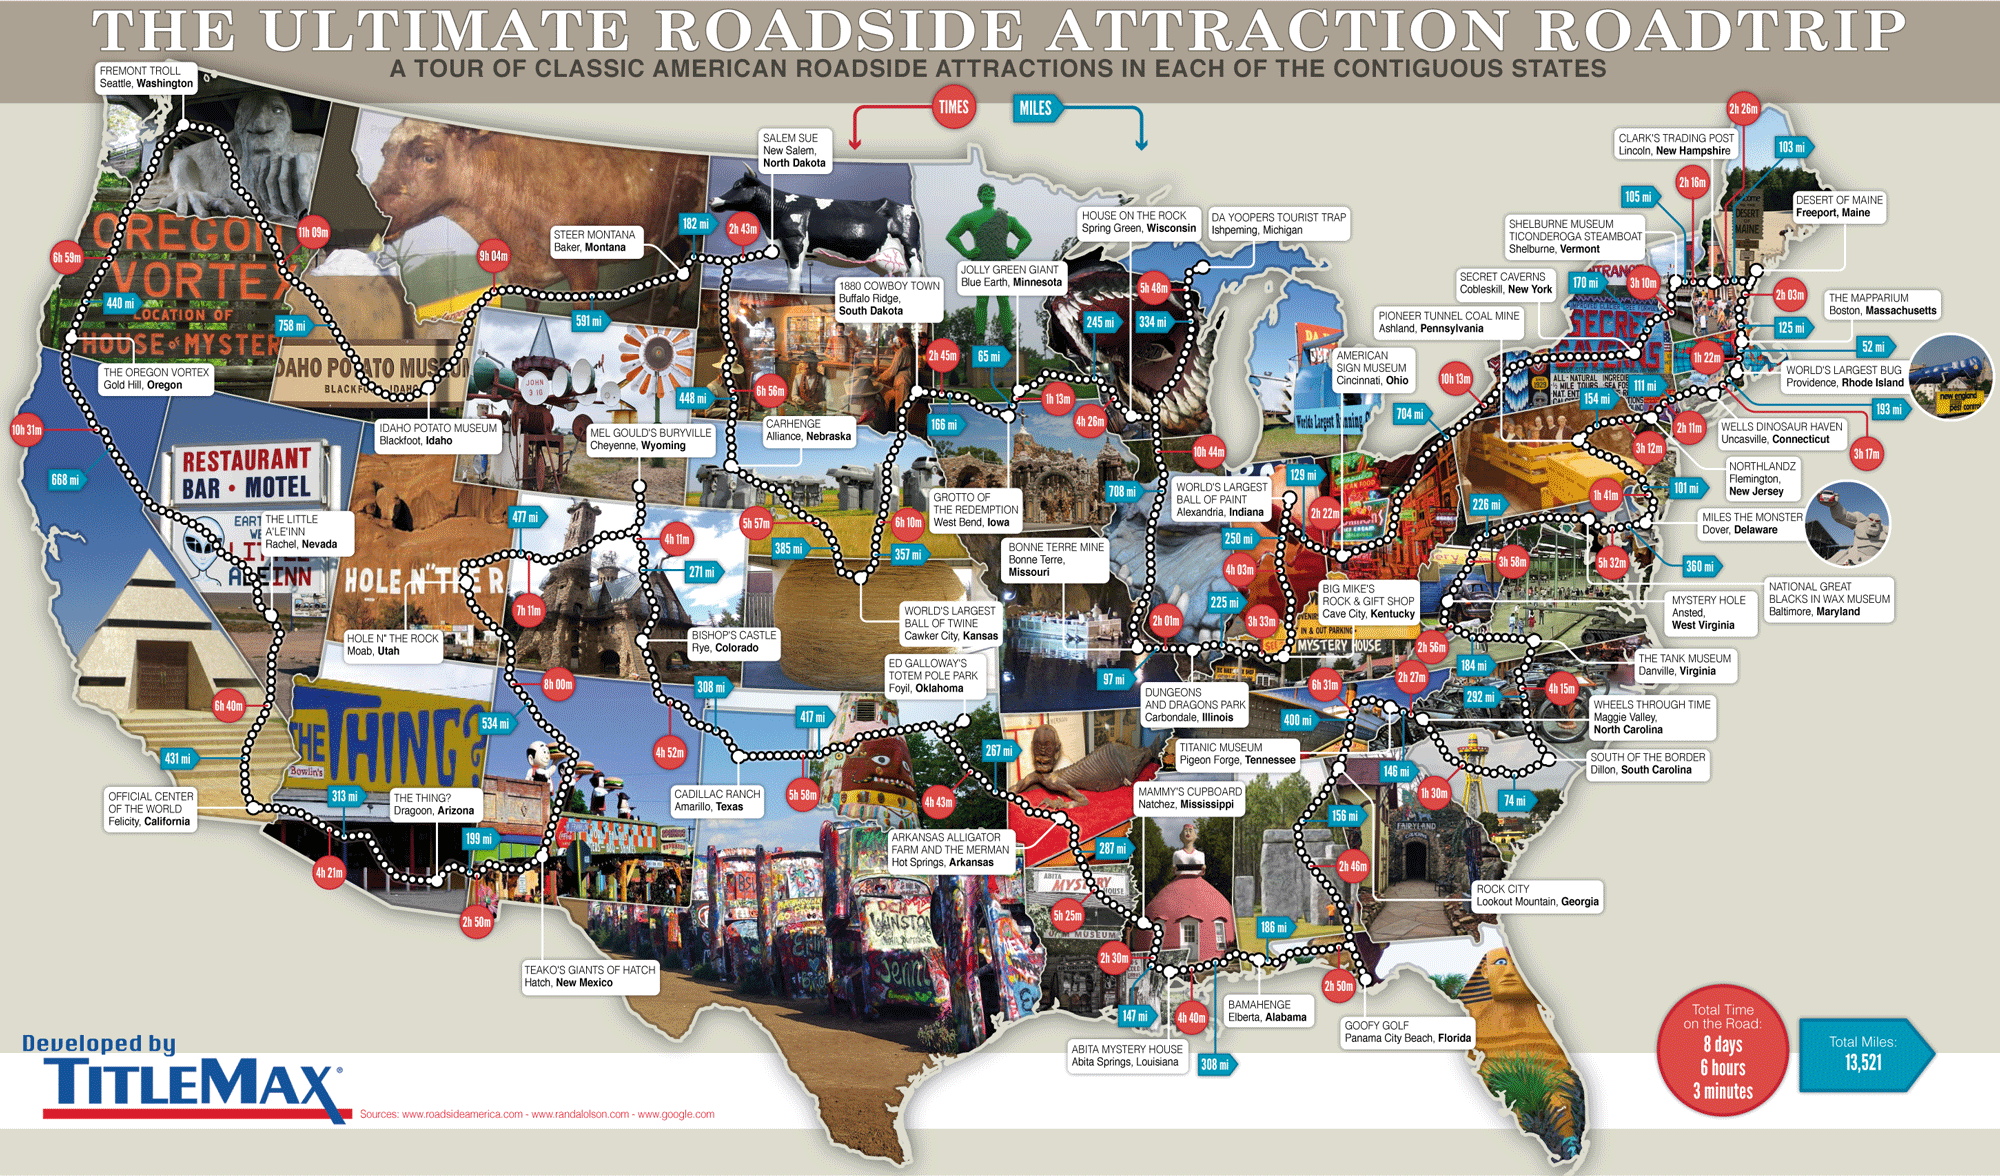 The Ultimate Roadside Attraction Roadtrip #Infographic